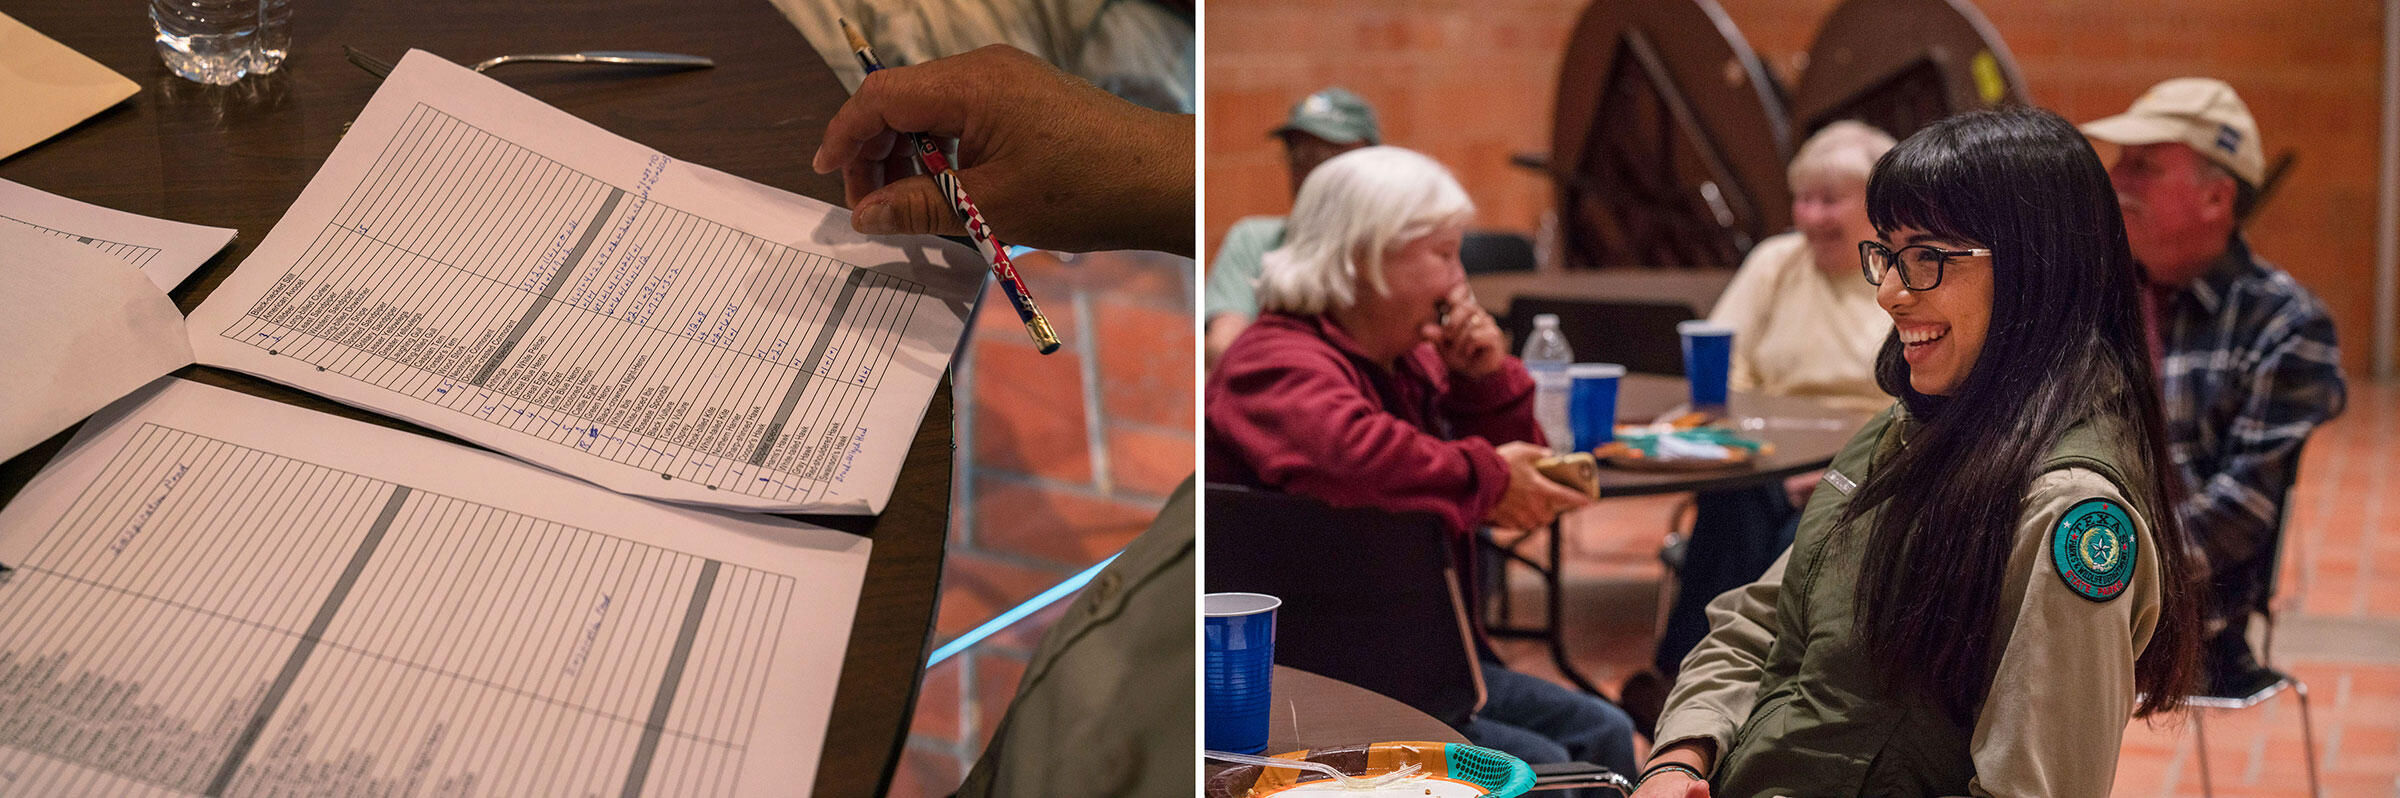 Texas Parks and Wildlife interpreter Angela Rojas and volunteers share their findings from the Christmas Bird Count during their potluck gathering at the end of a long day. Photos: Verónica G. Cárdenas